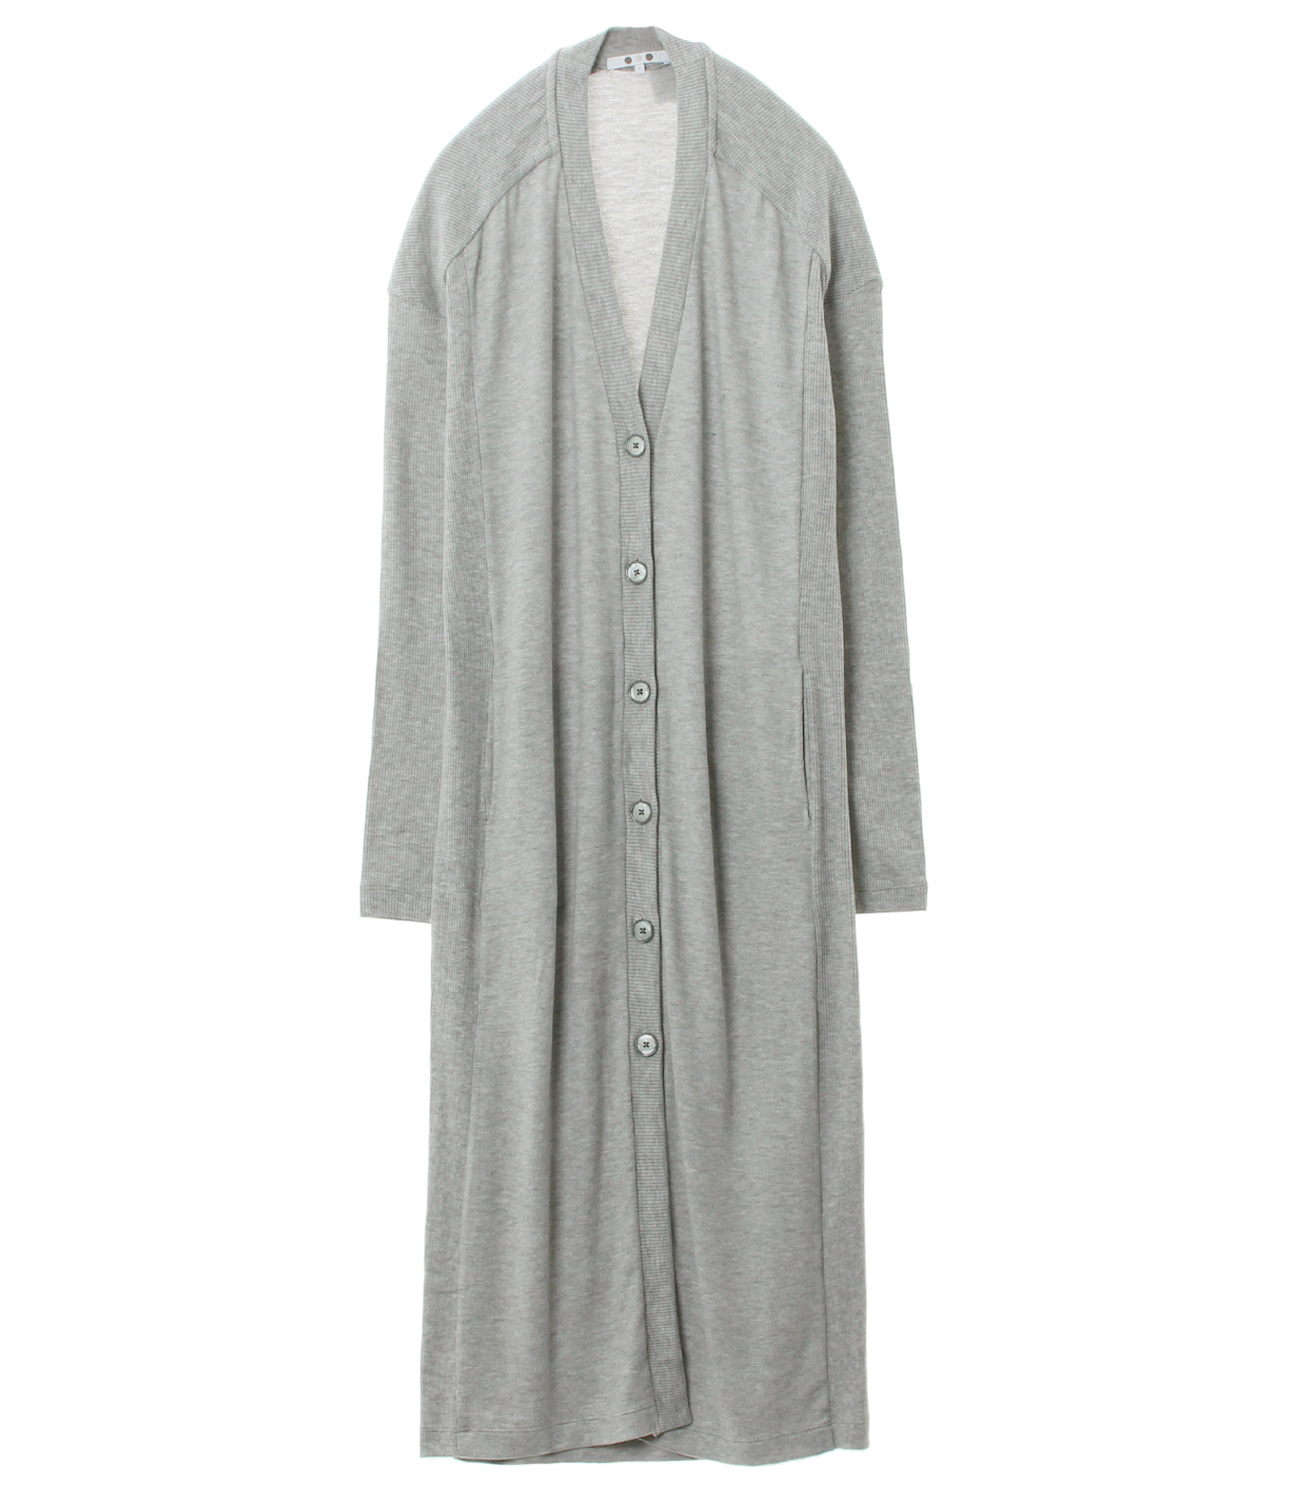 Brushed sweater long cardigan 詳細画像 heather grey 1